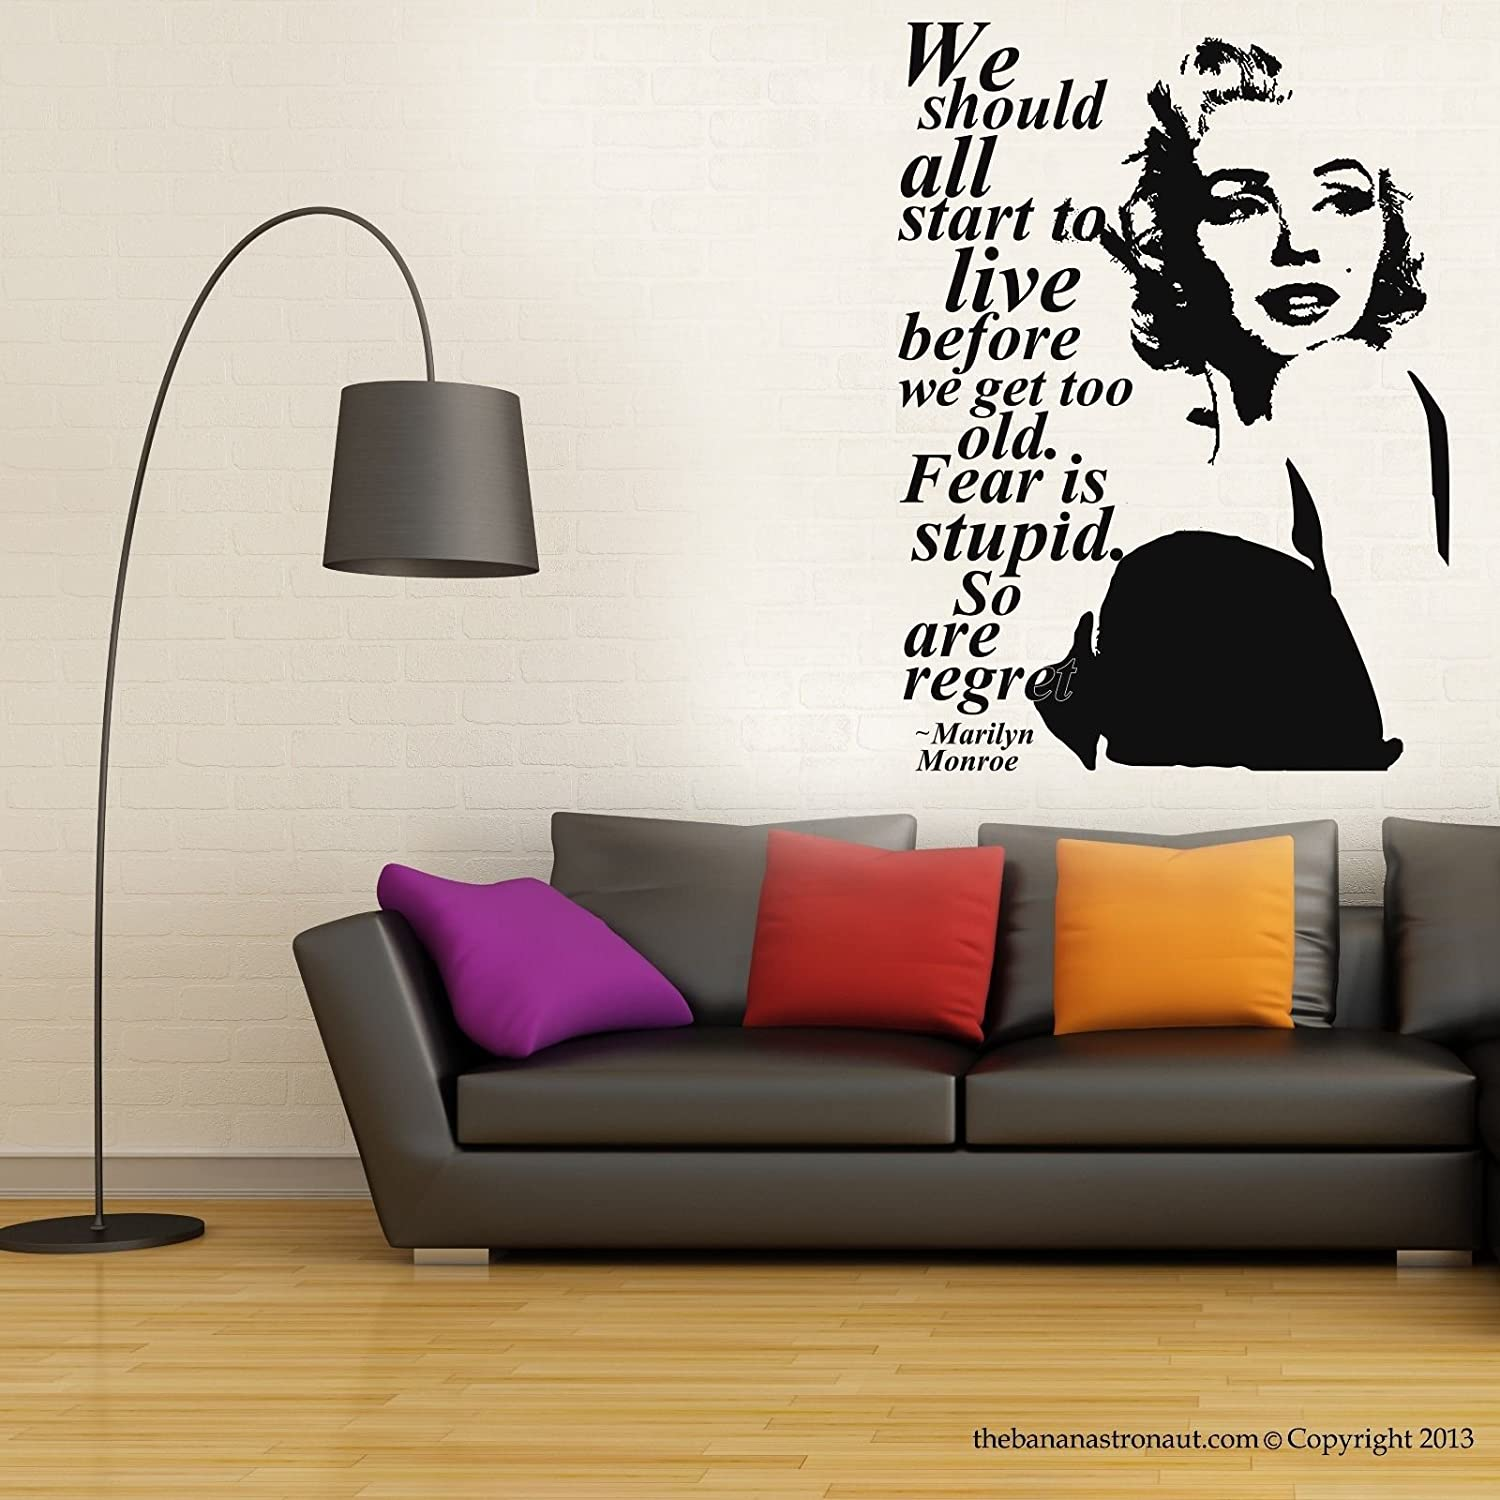 Amazon CHSGJY Removable Marilyn Monroe Quote Regret Wall Decal Stickers Room Decor Home DIY Kitchen